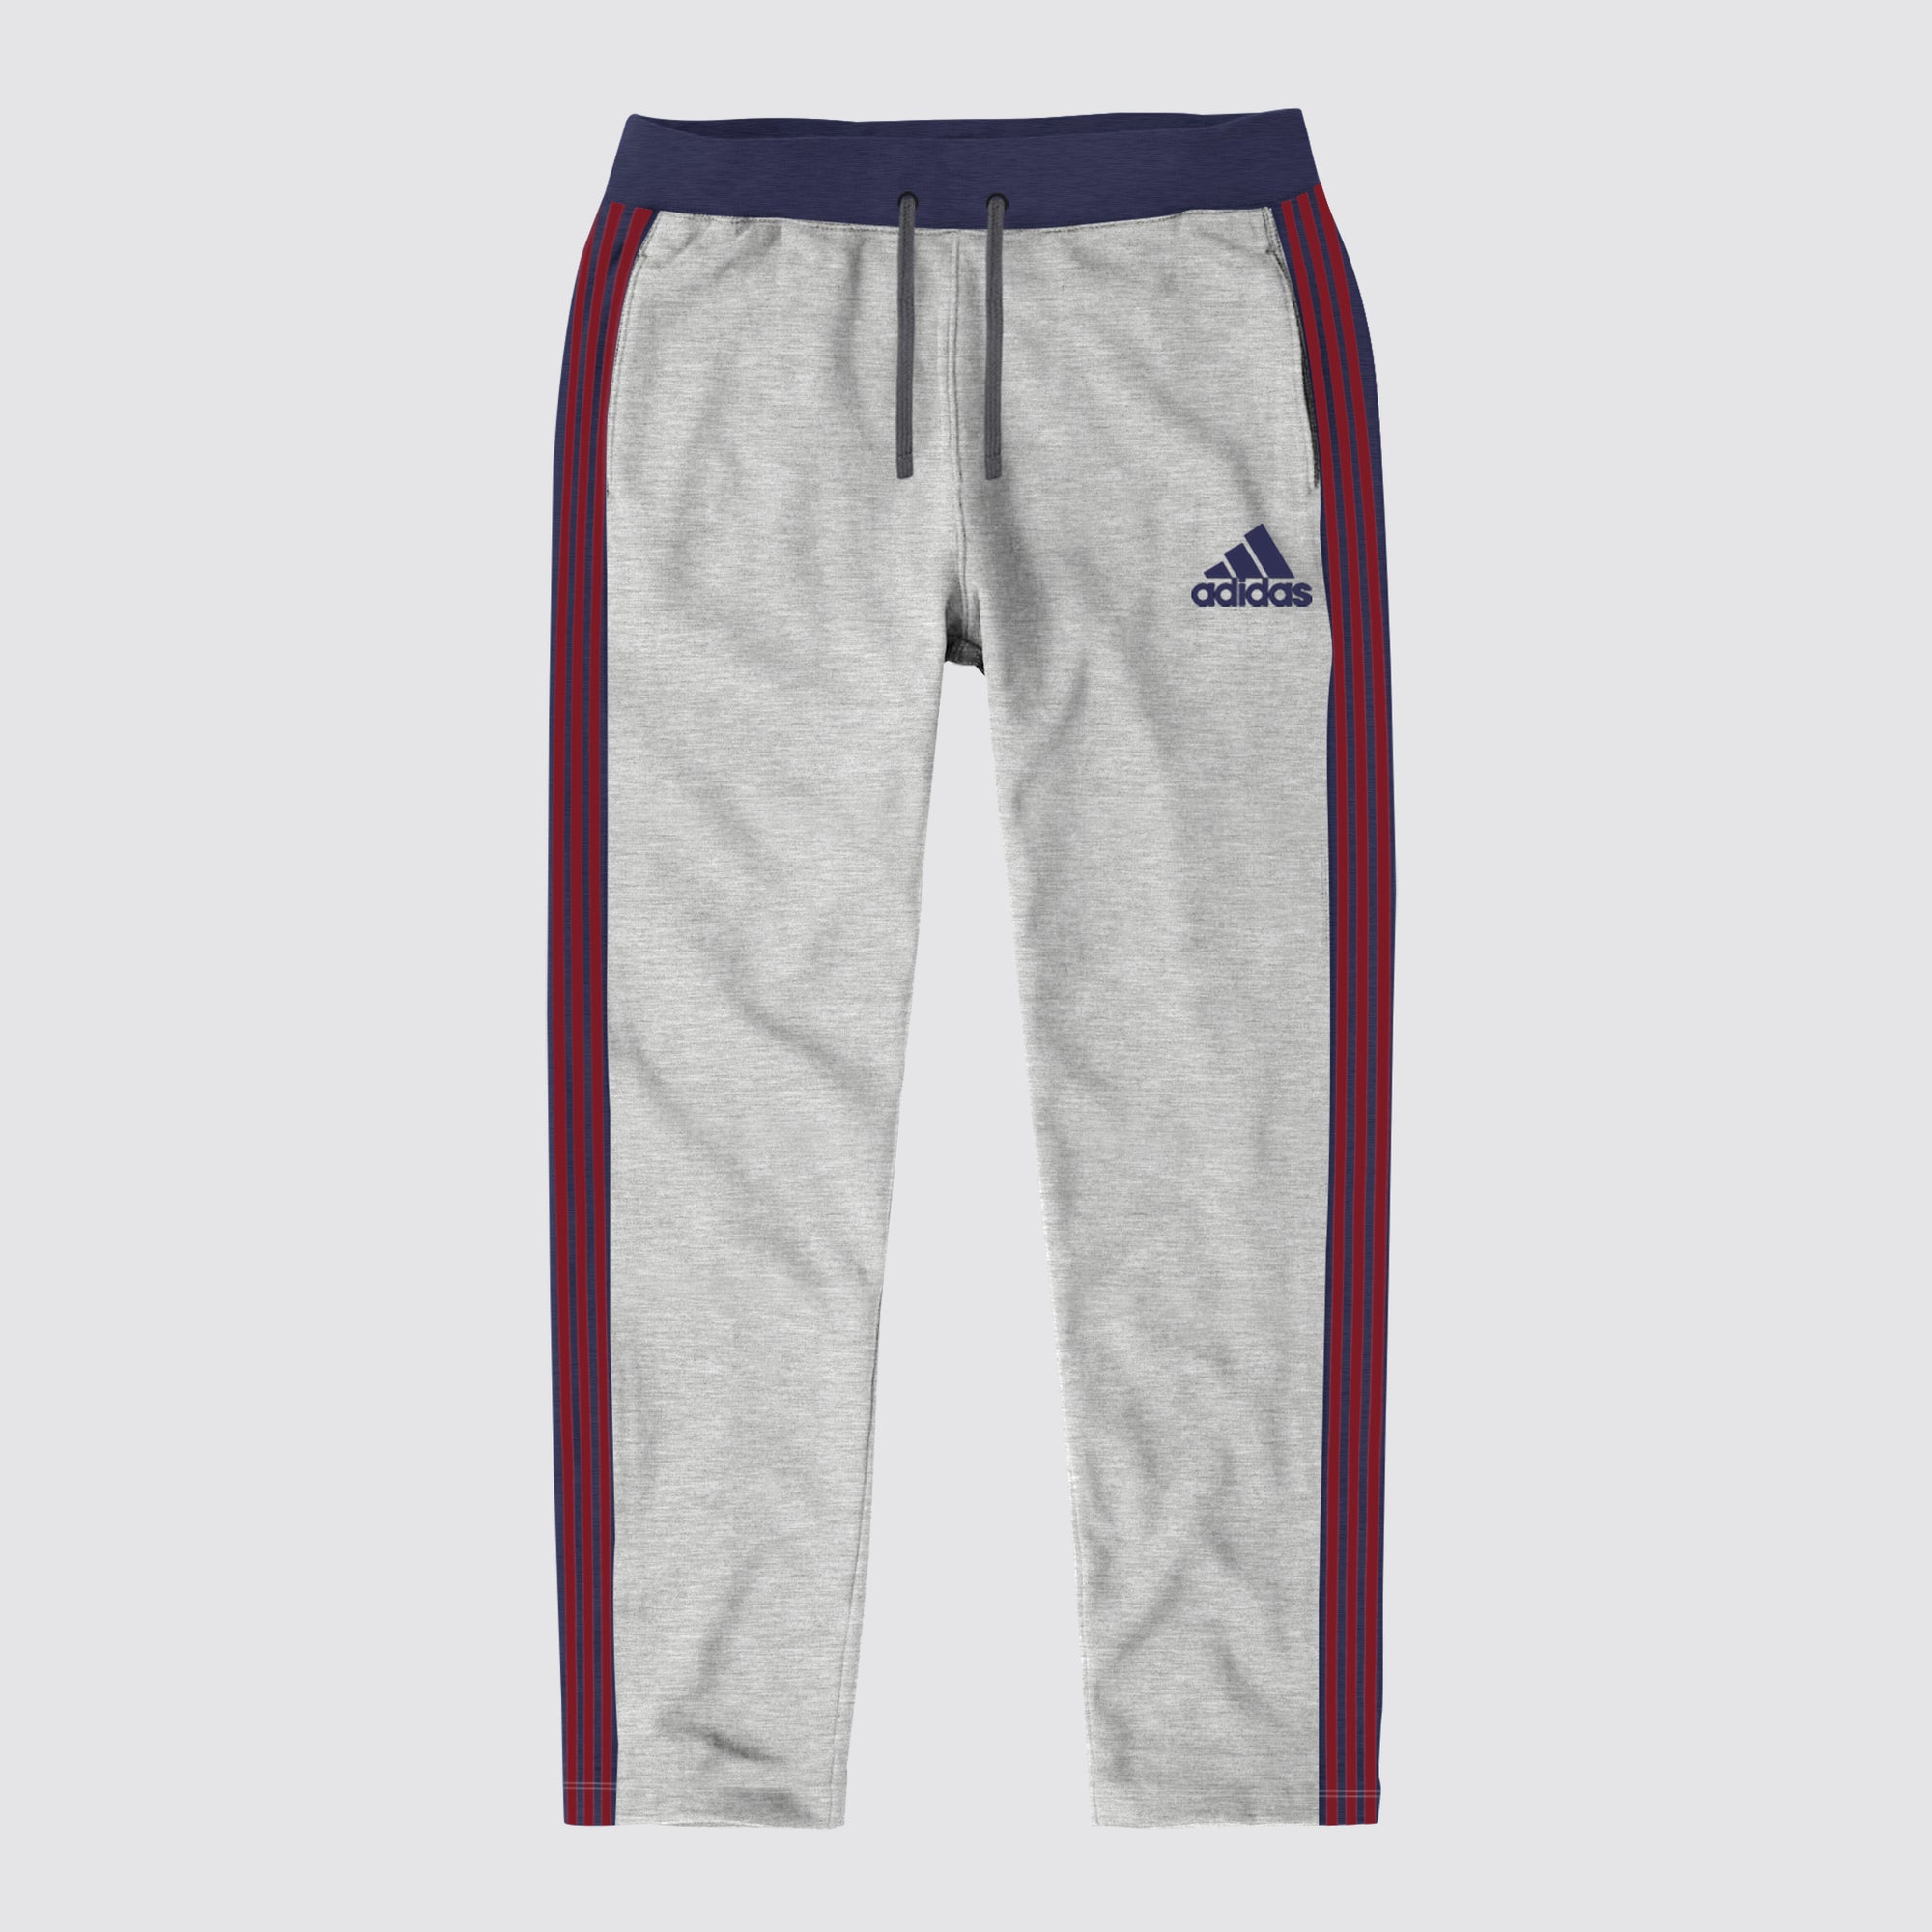 the best attitude 7d1f3 00e22 Adidas Single Jersey Regular Fit Jogger Trouser For Men-Grey With Navy    Maroon Stripe